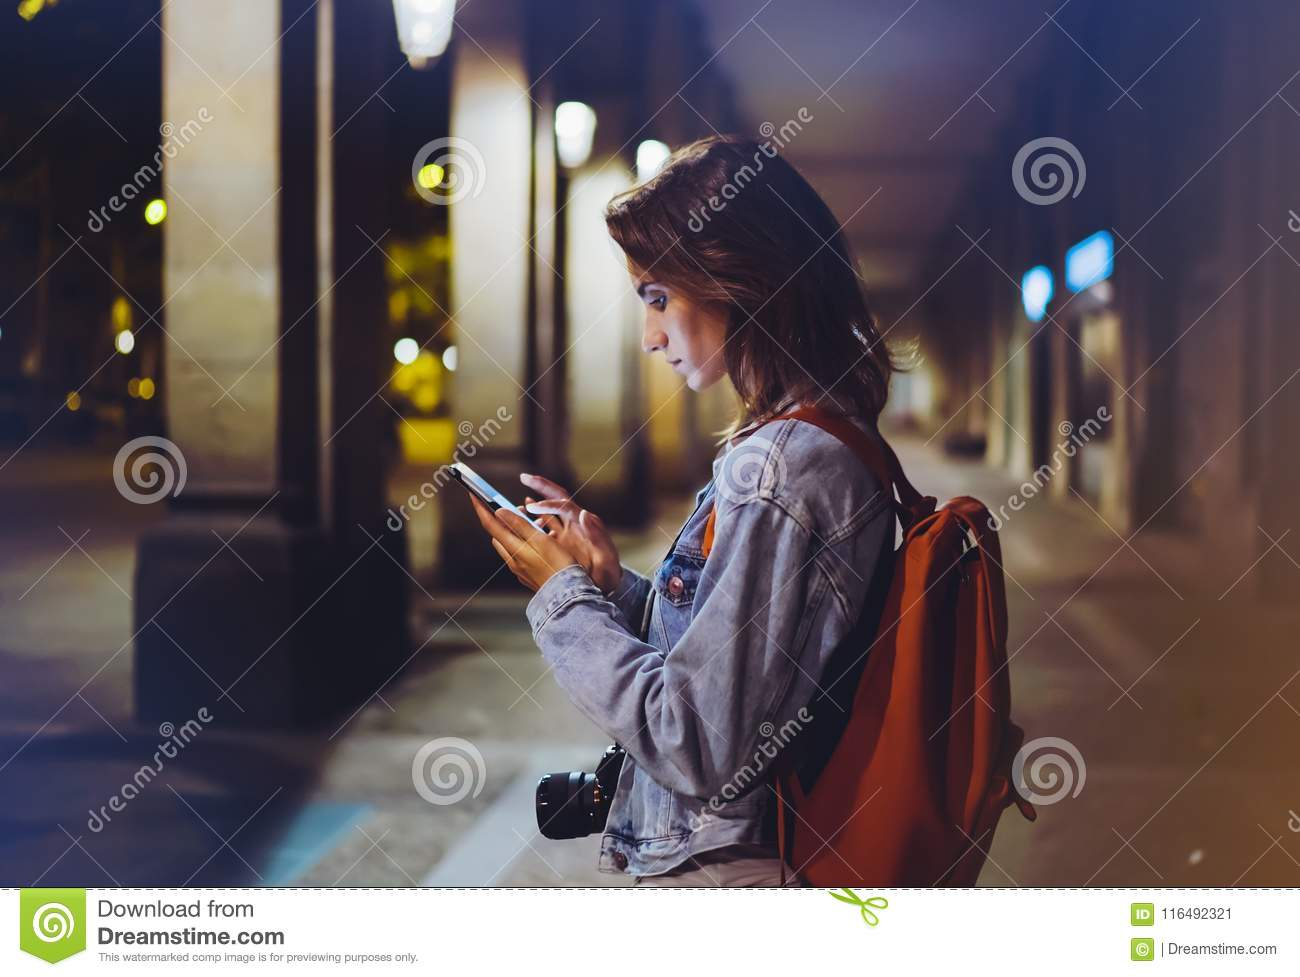 Blogger hipster using in hands gadget mobile phone, woman with backpack pointing finger on blank screen smartphone on background b